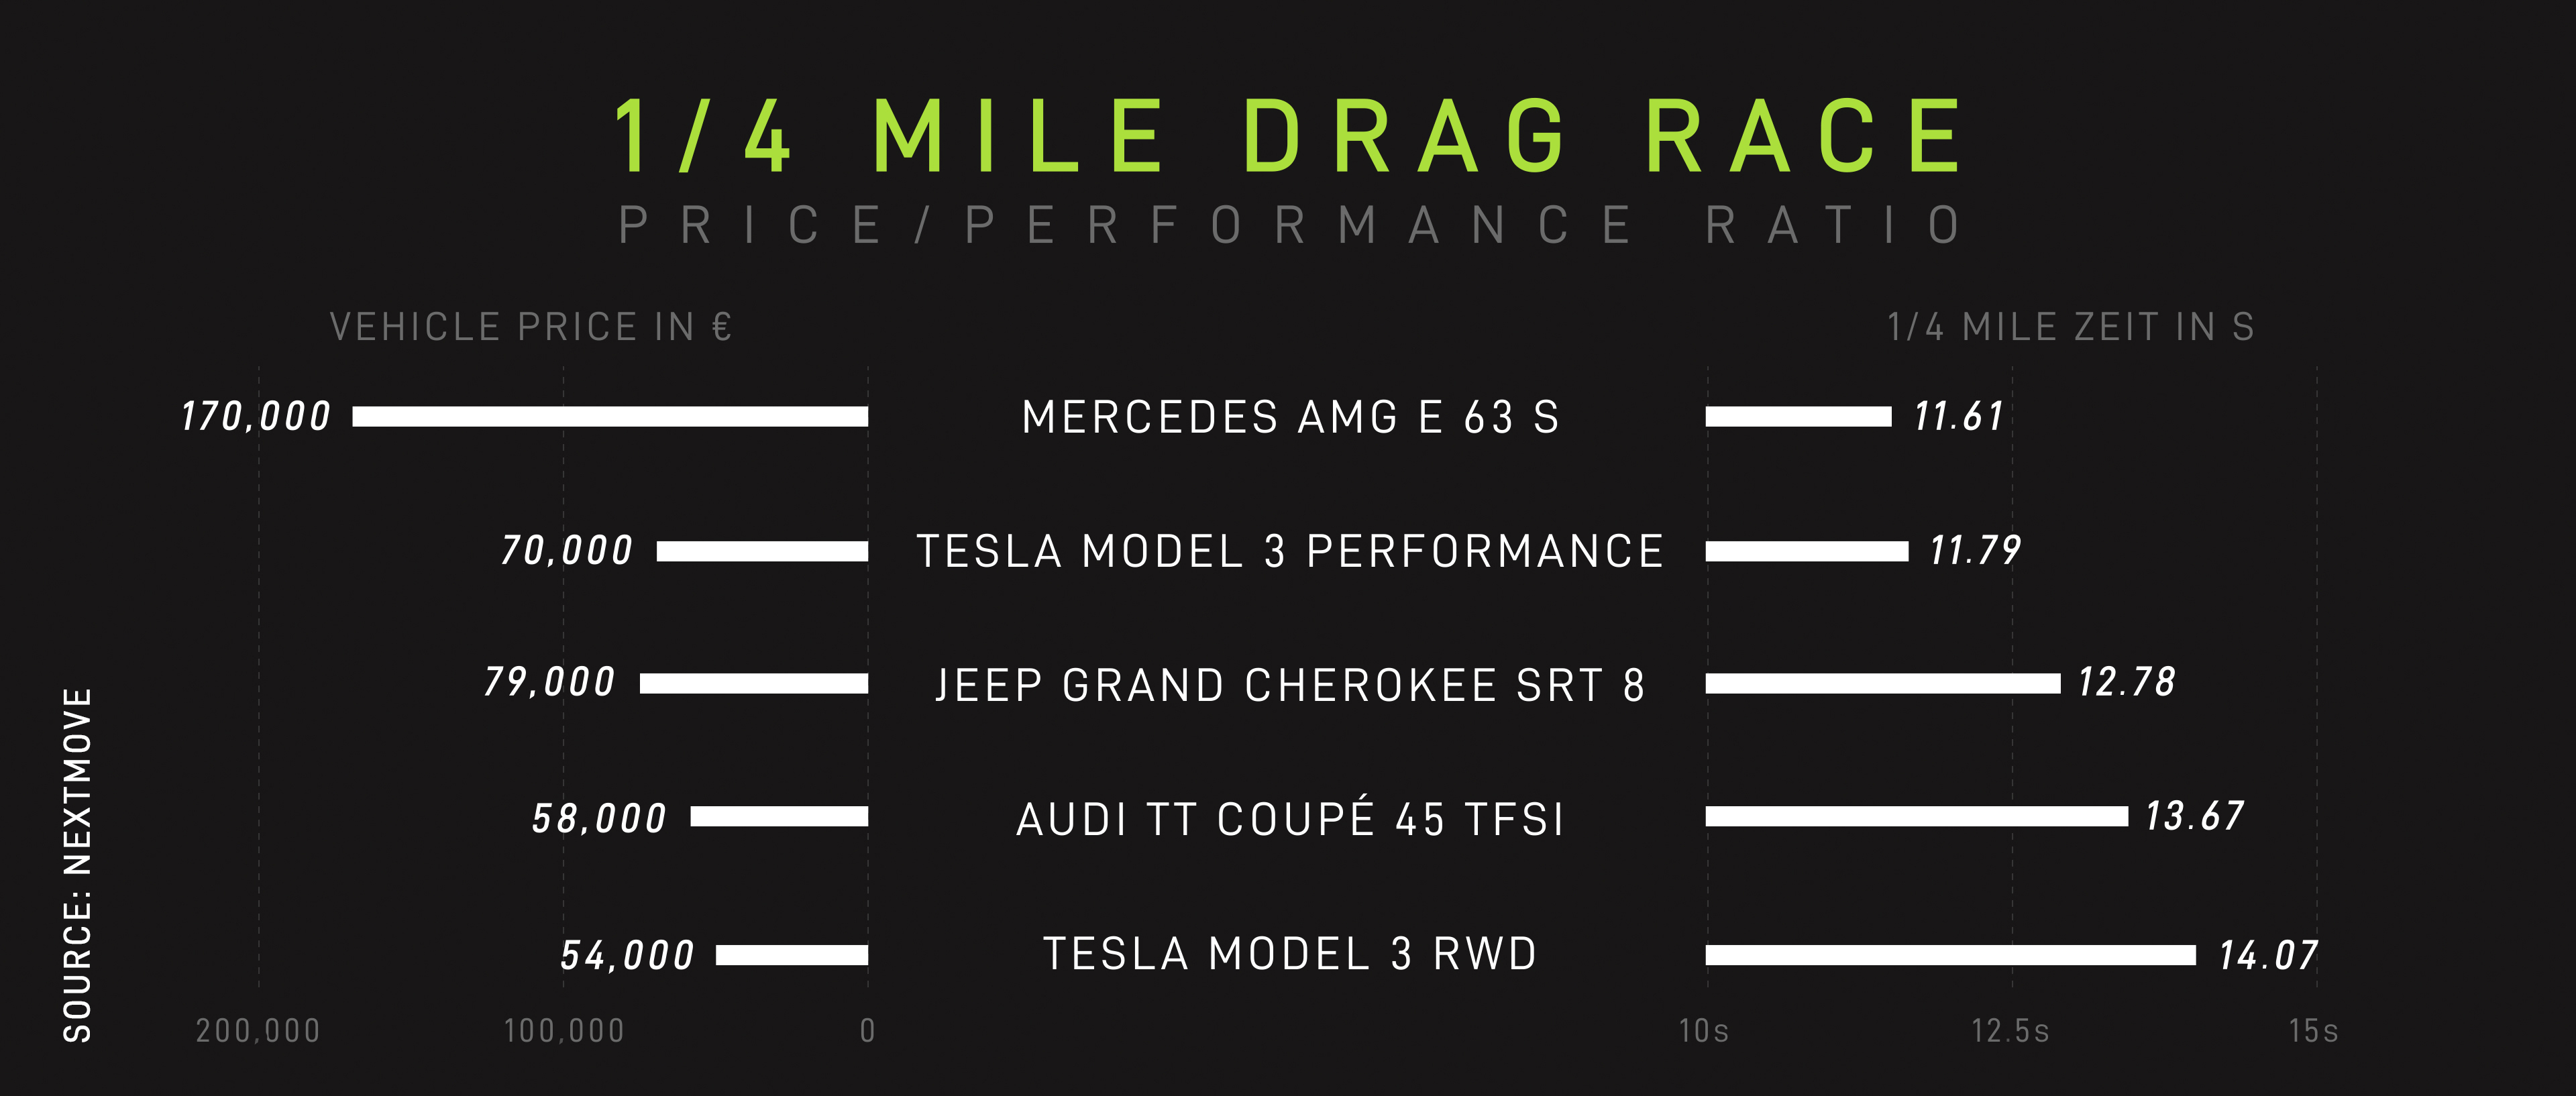 Drag Race Tesla Model 3 Mercedes AMG E 63 S Quartermile